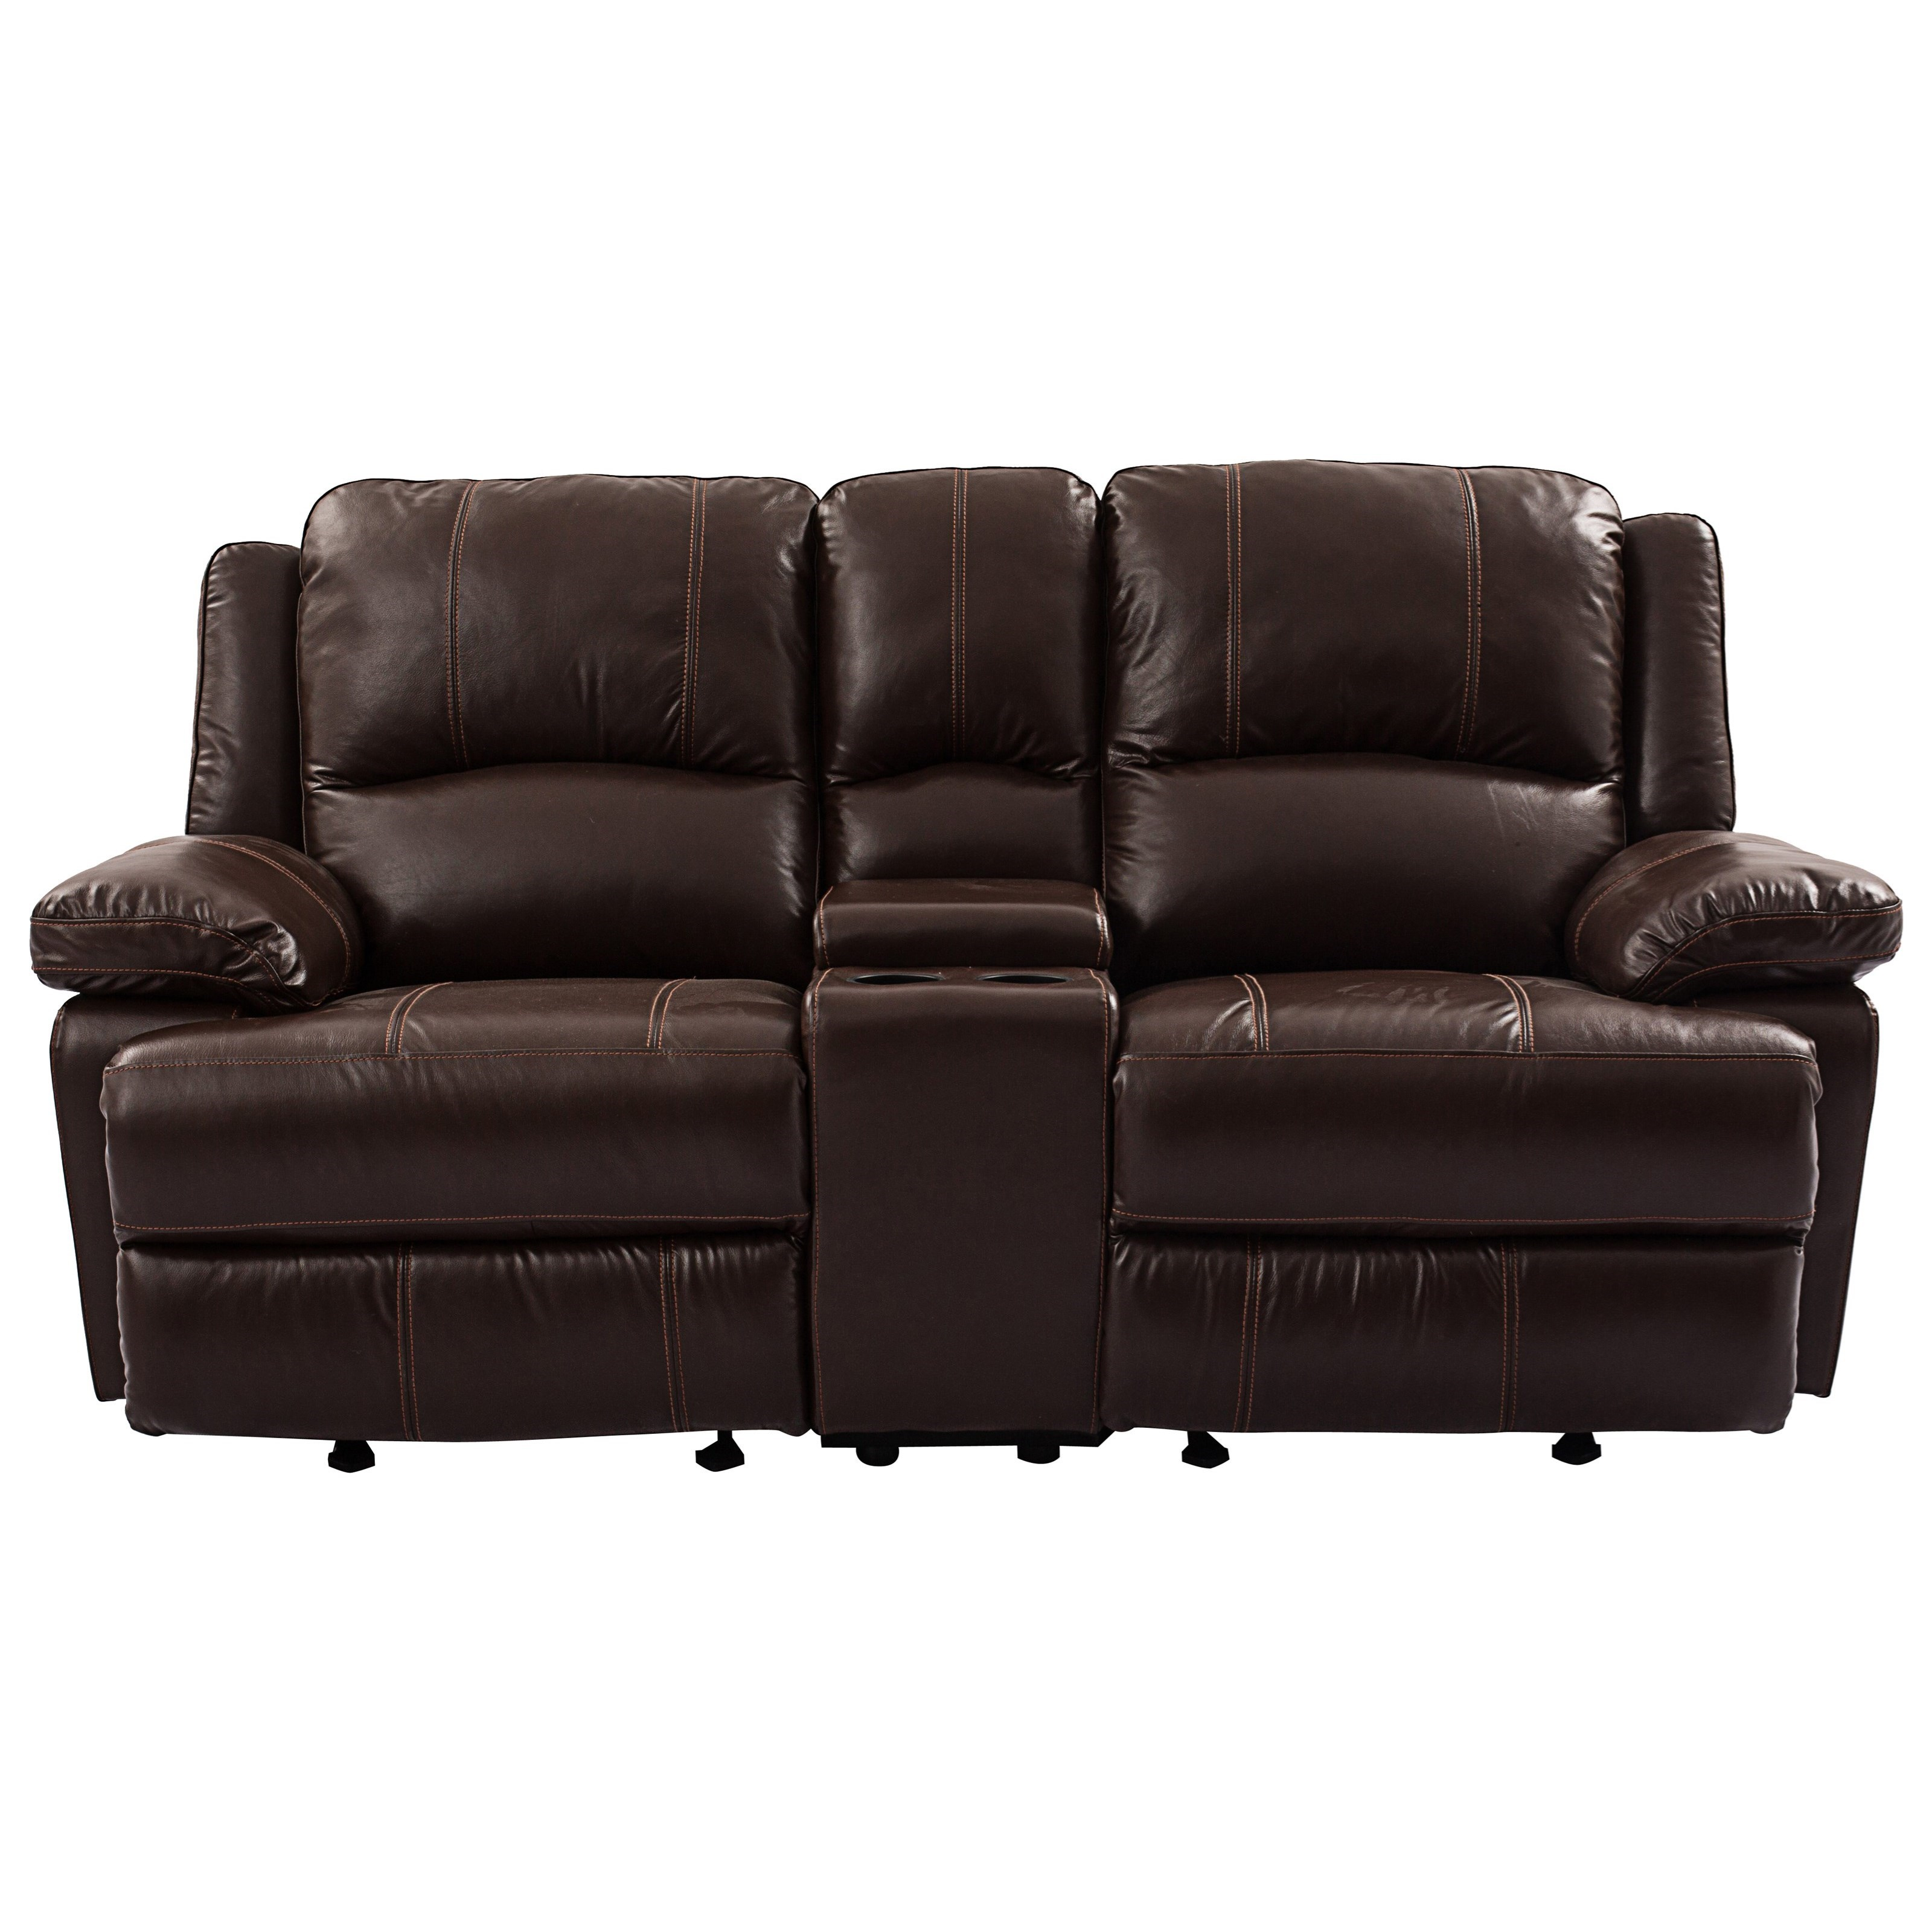 Cheers Sofa 9863 Reclining Loveseat with Console - Item Number: 9863M-AL1-1K+HCE+AR1-1K-2527